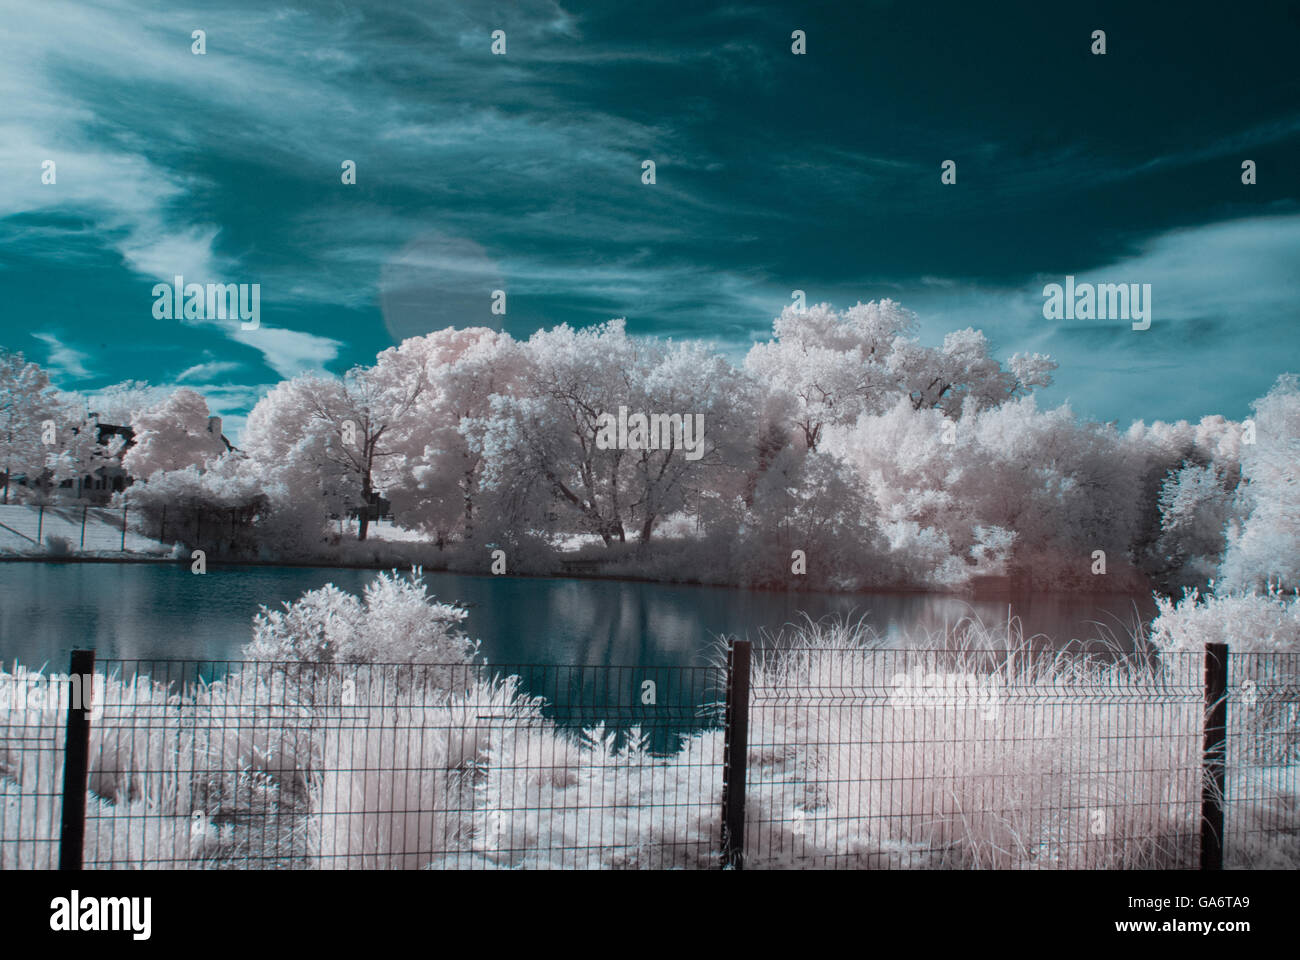 Infra Red photo of a pond / trees - Stock Image